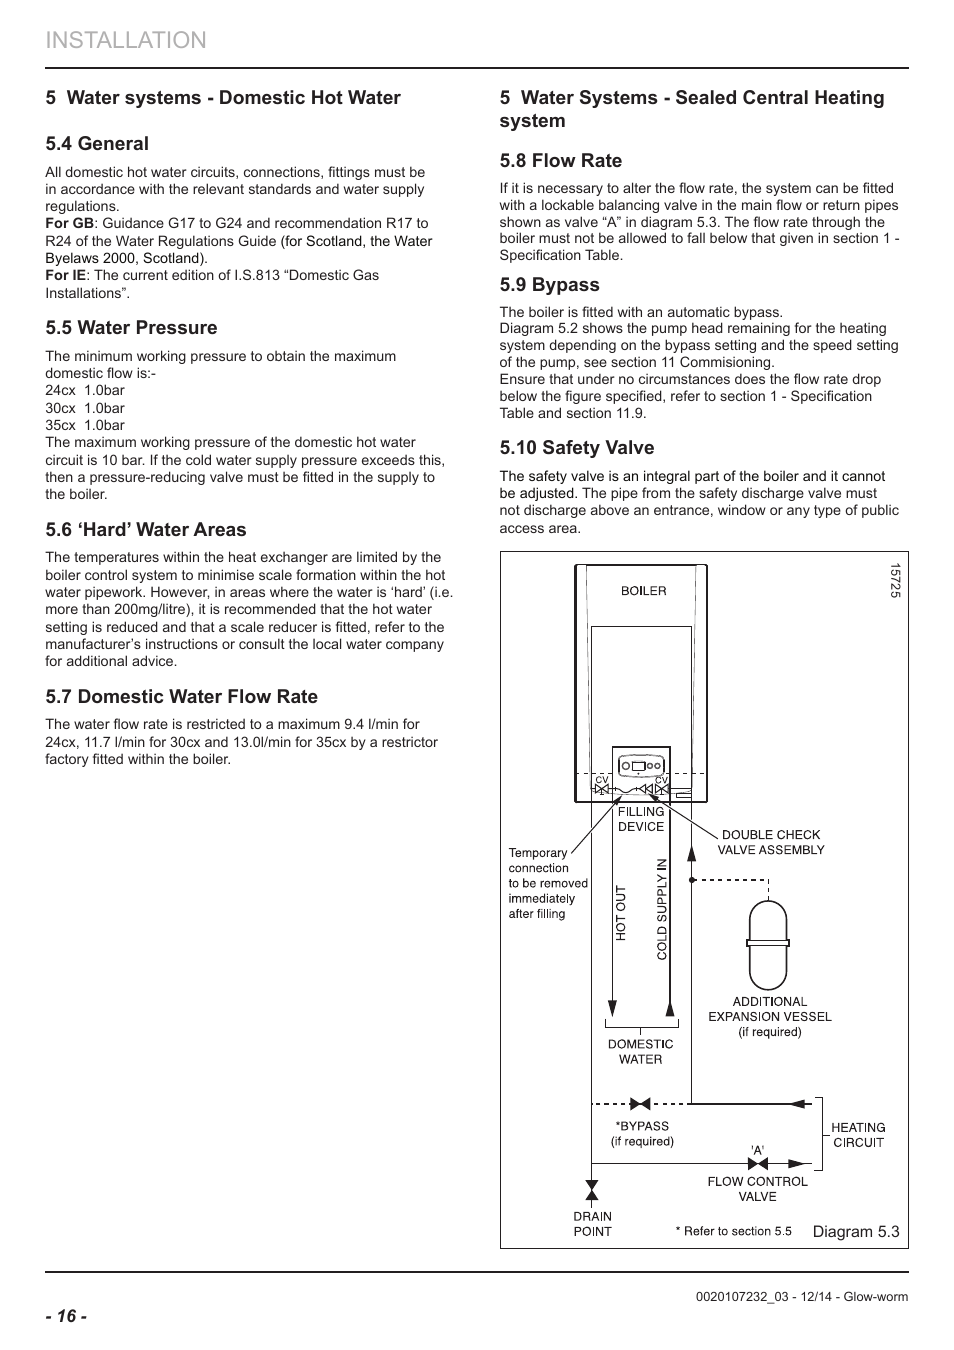 Installation, 5 water systems - domestic hot water 5.4 general, 5 ...